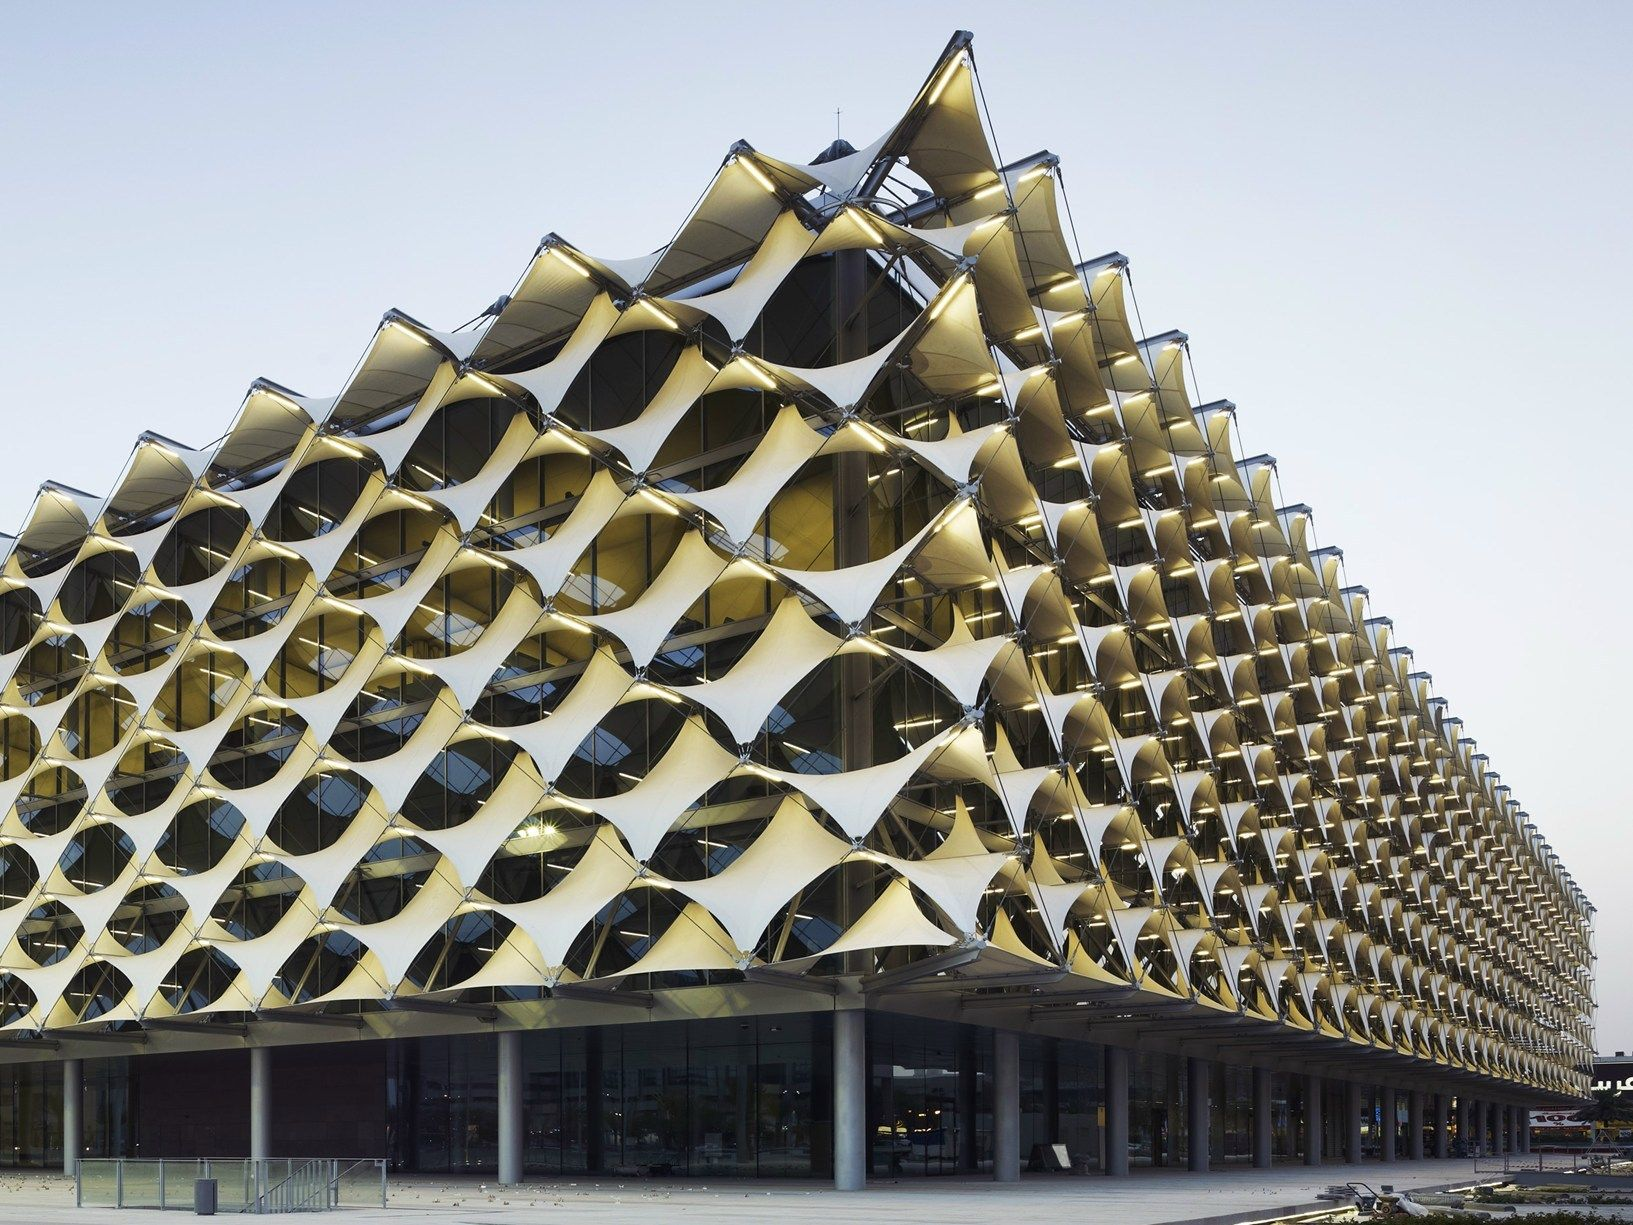 Arabia Saudita: la nuova King Fahad National Library di Riyadh